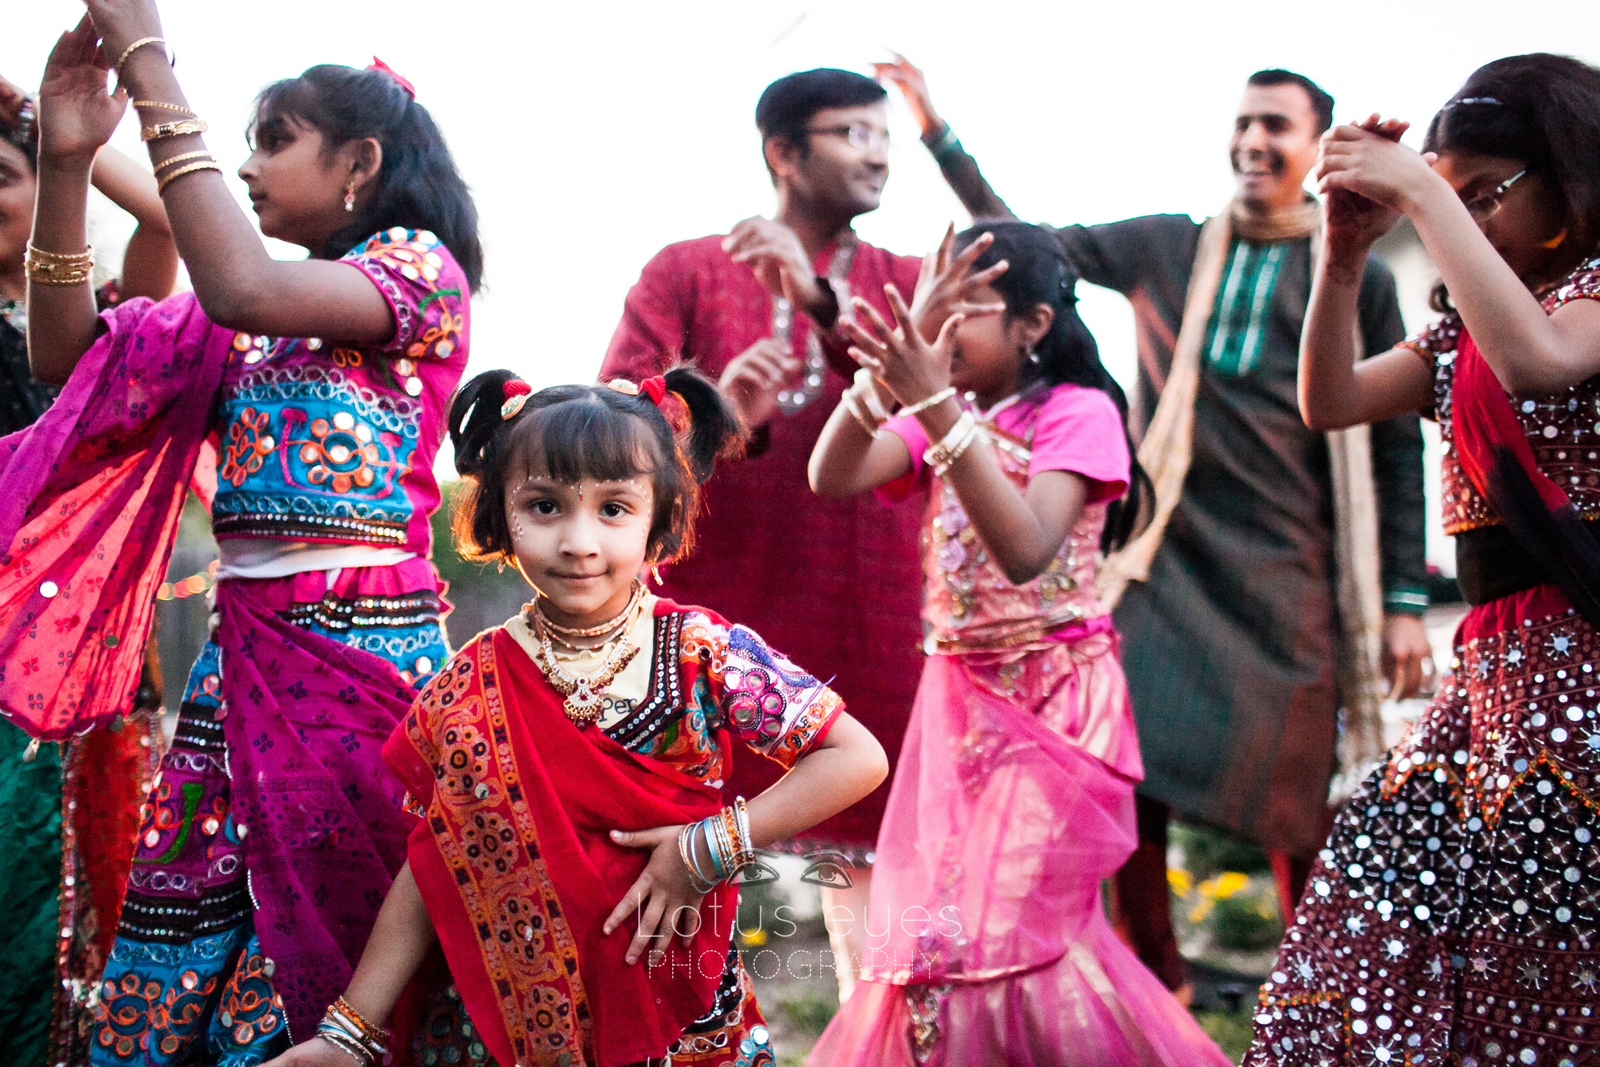 I Am Excited To Share These Beautiful Photographs With You As Well Provide Some Insight Those Who Are Not Familiar The Raas Garba Ceremony